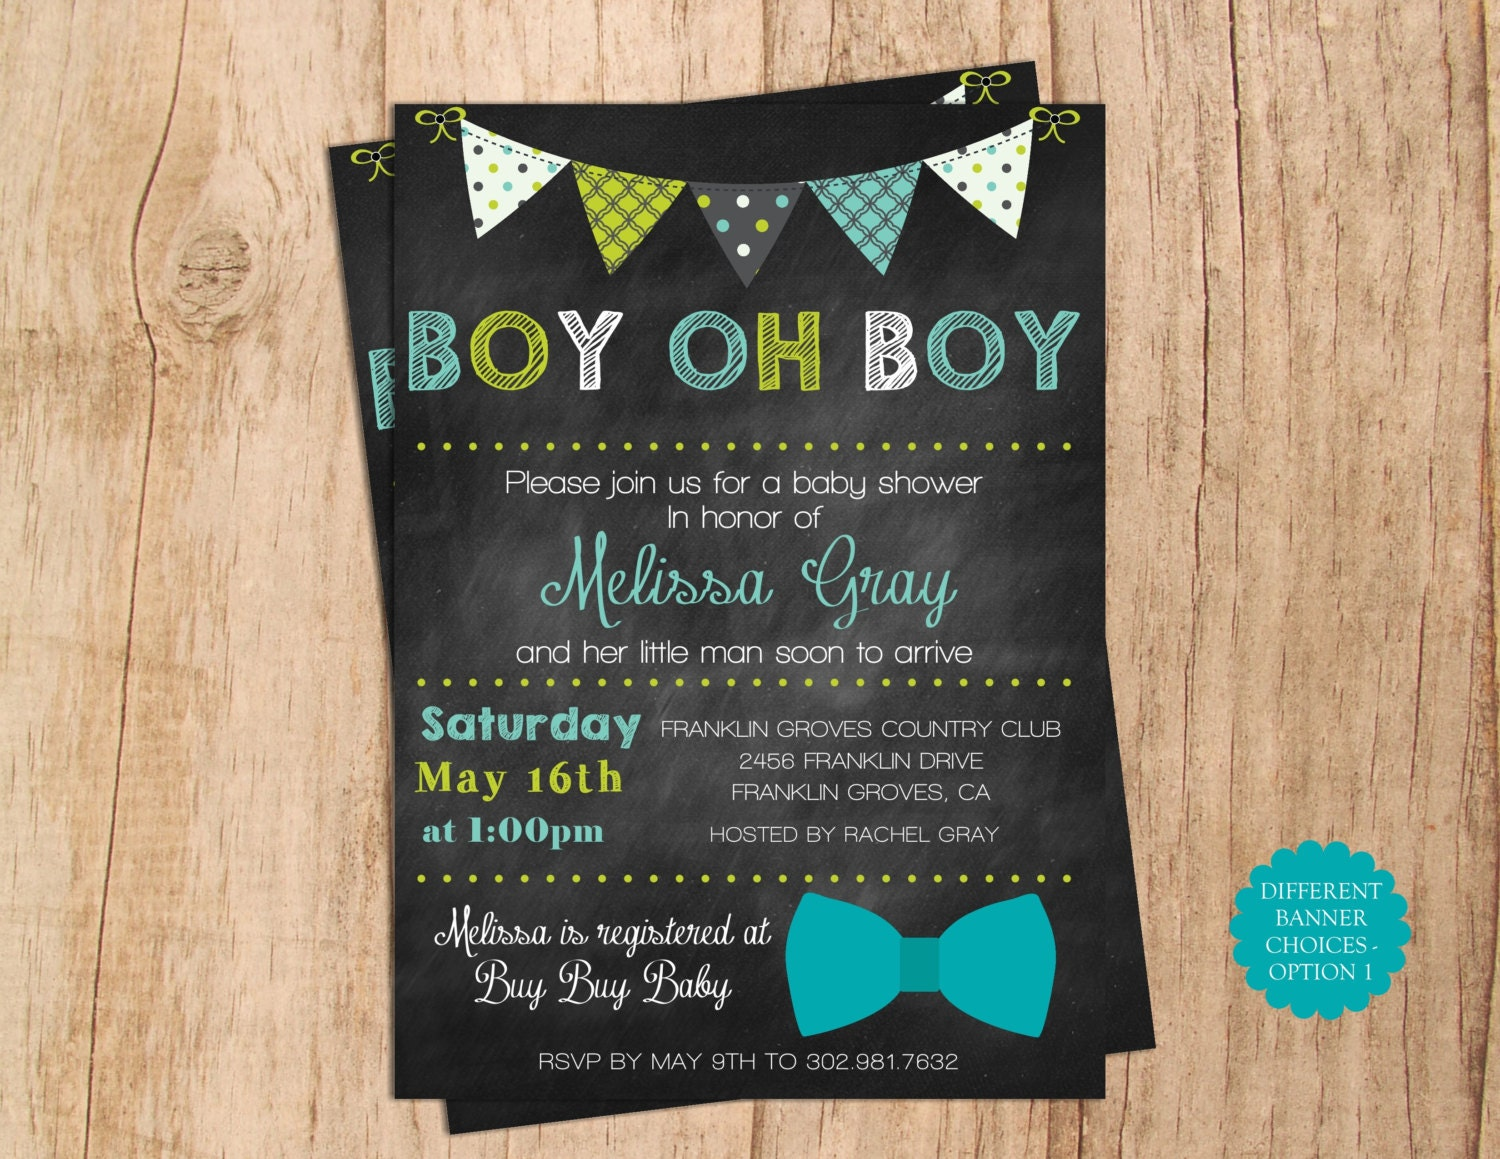 Boy Oh Boy Baby Shower Invitation . Banner with Green Blue